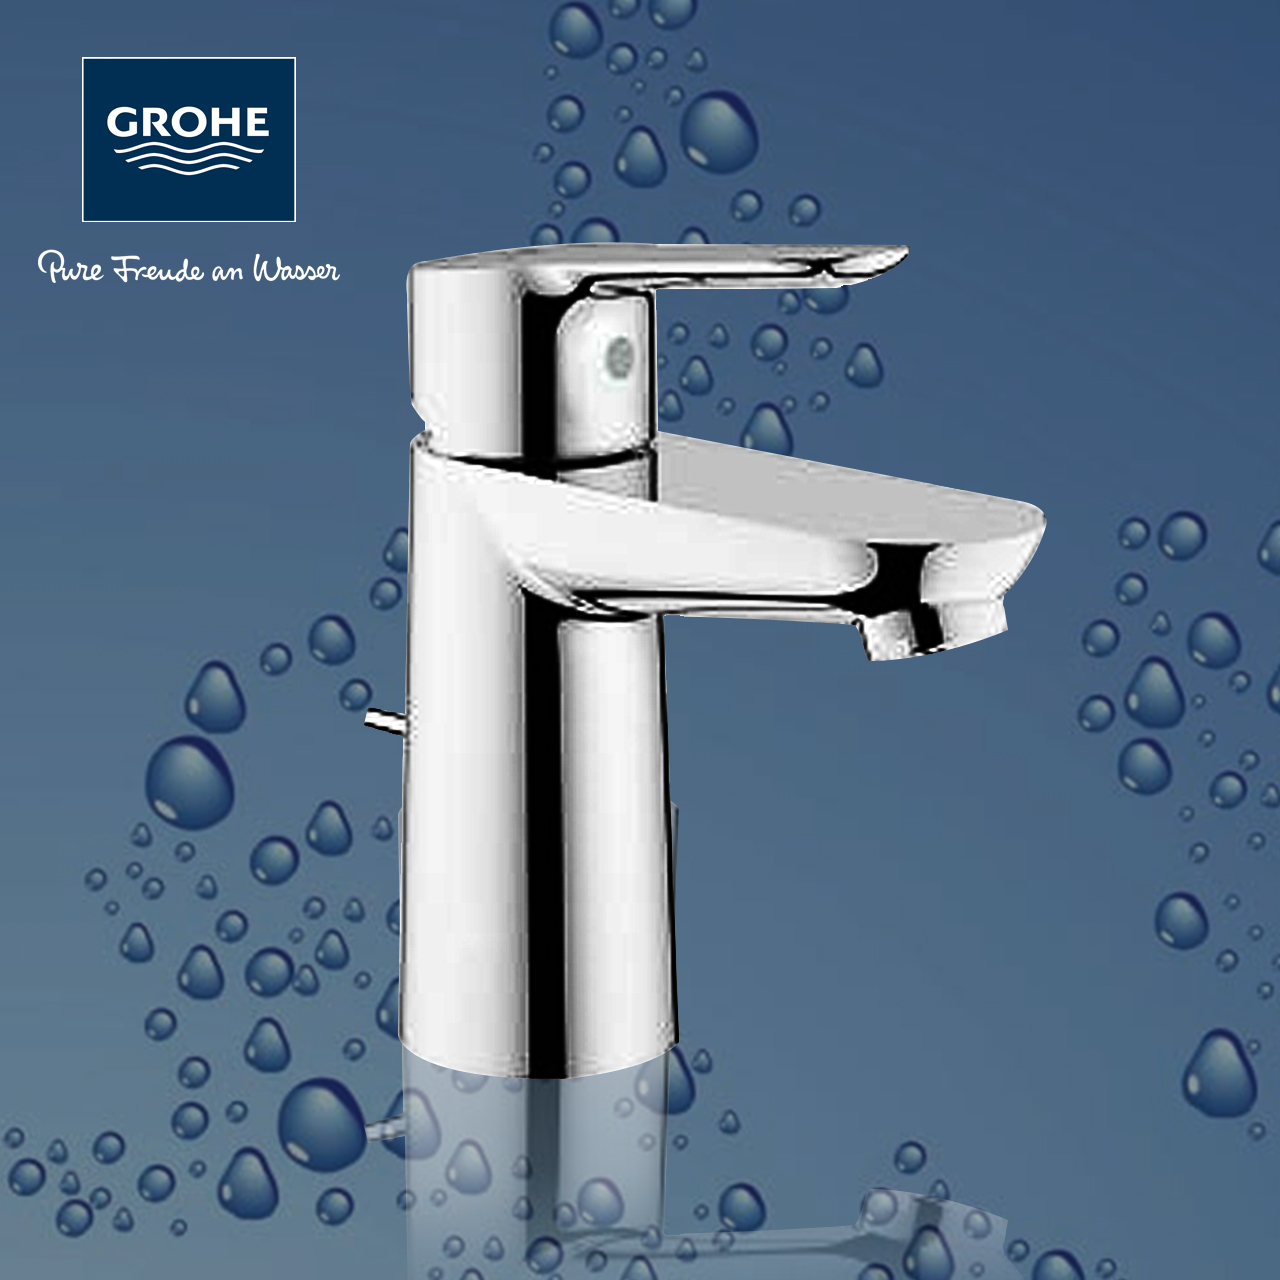 USD 434.53] Germany GROHE Grohe basin faucet bathroom Single Handle ...